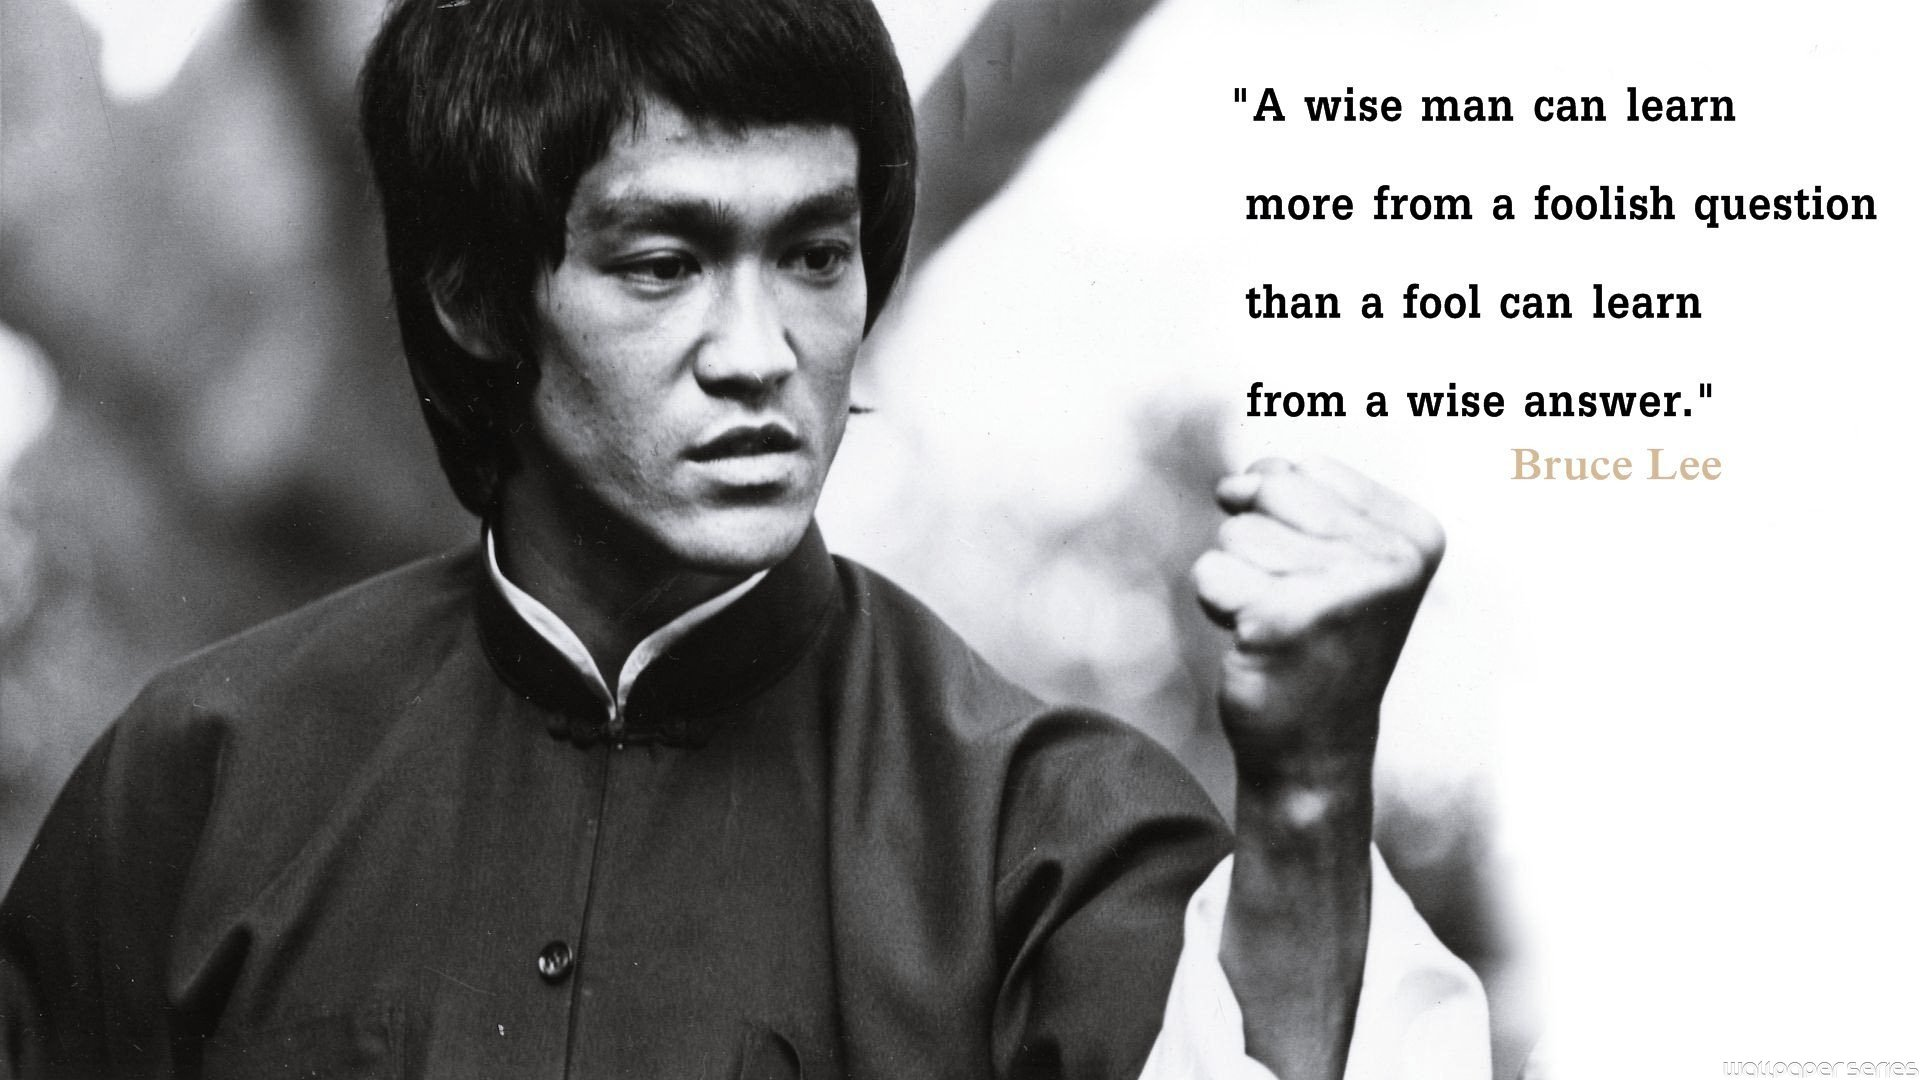 Bruce Lee Learn Quotes Wallpaper - Bruce Lee Quote Knowledge Will Give You Power - HD Wallpaper